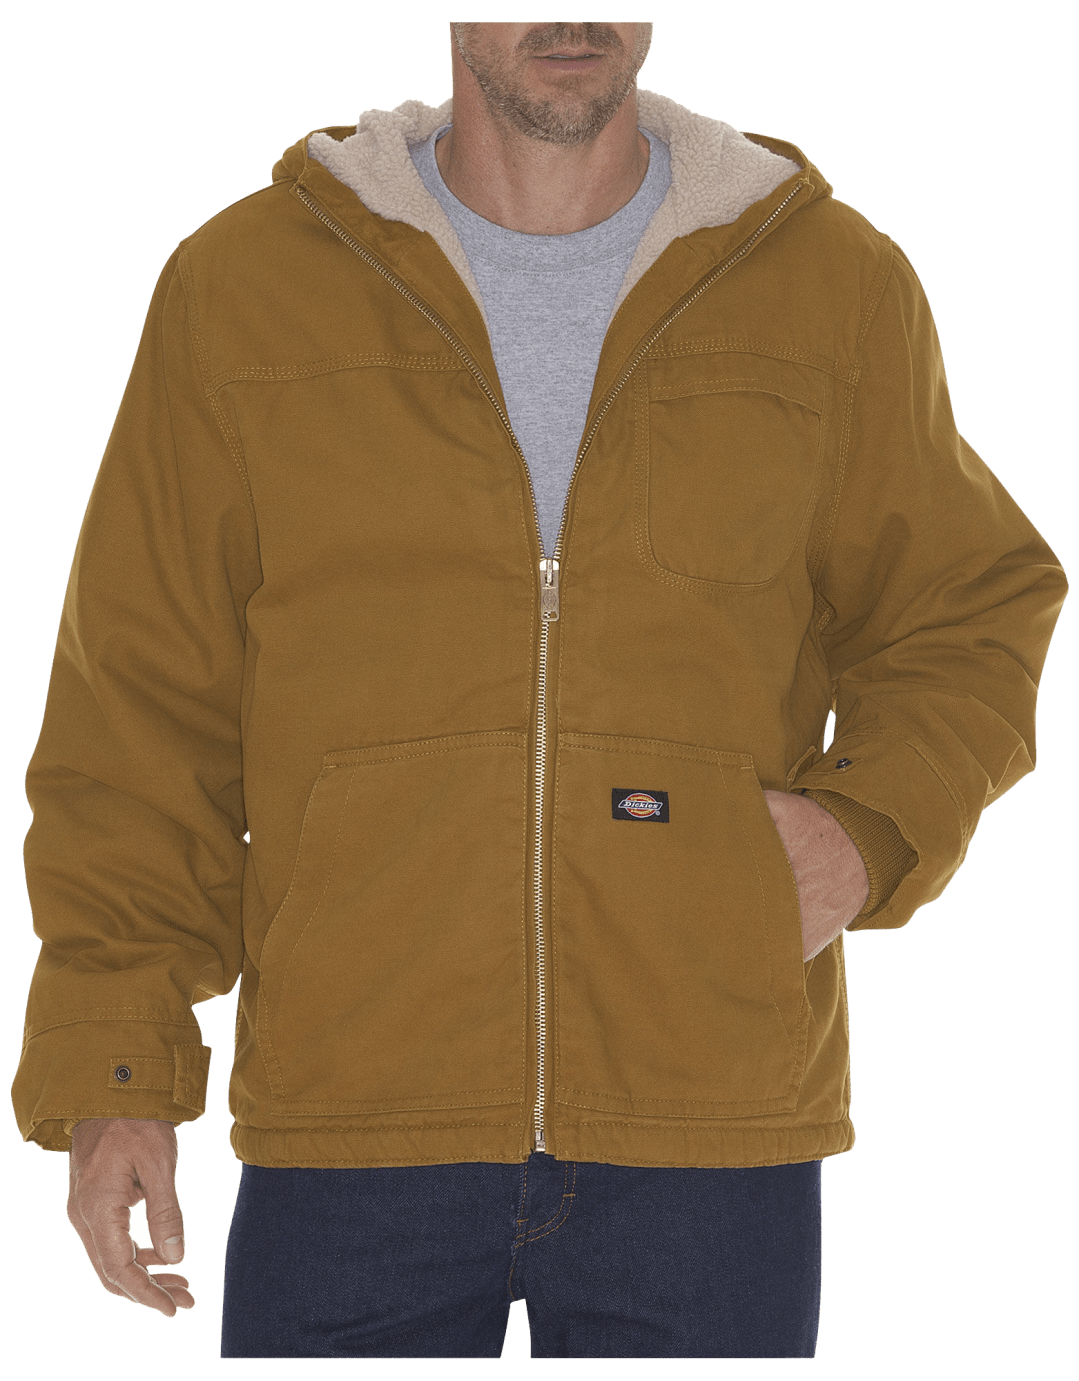 Excel Embroidery Outerwear Jackets